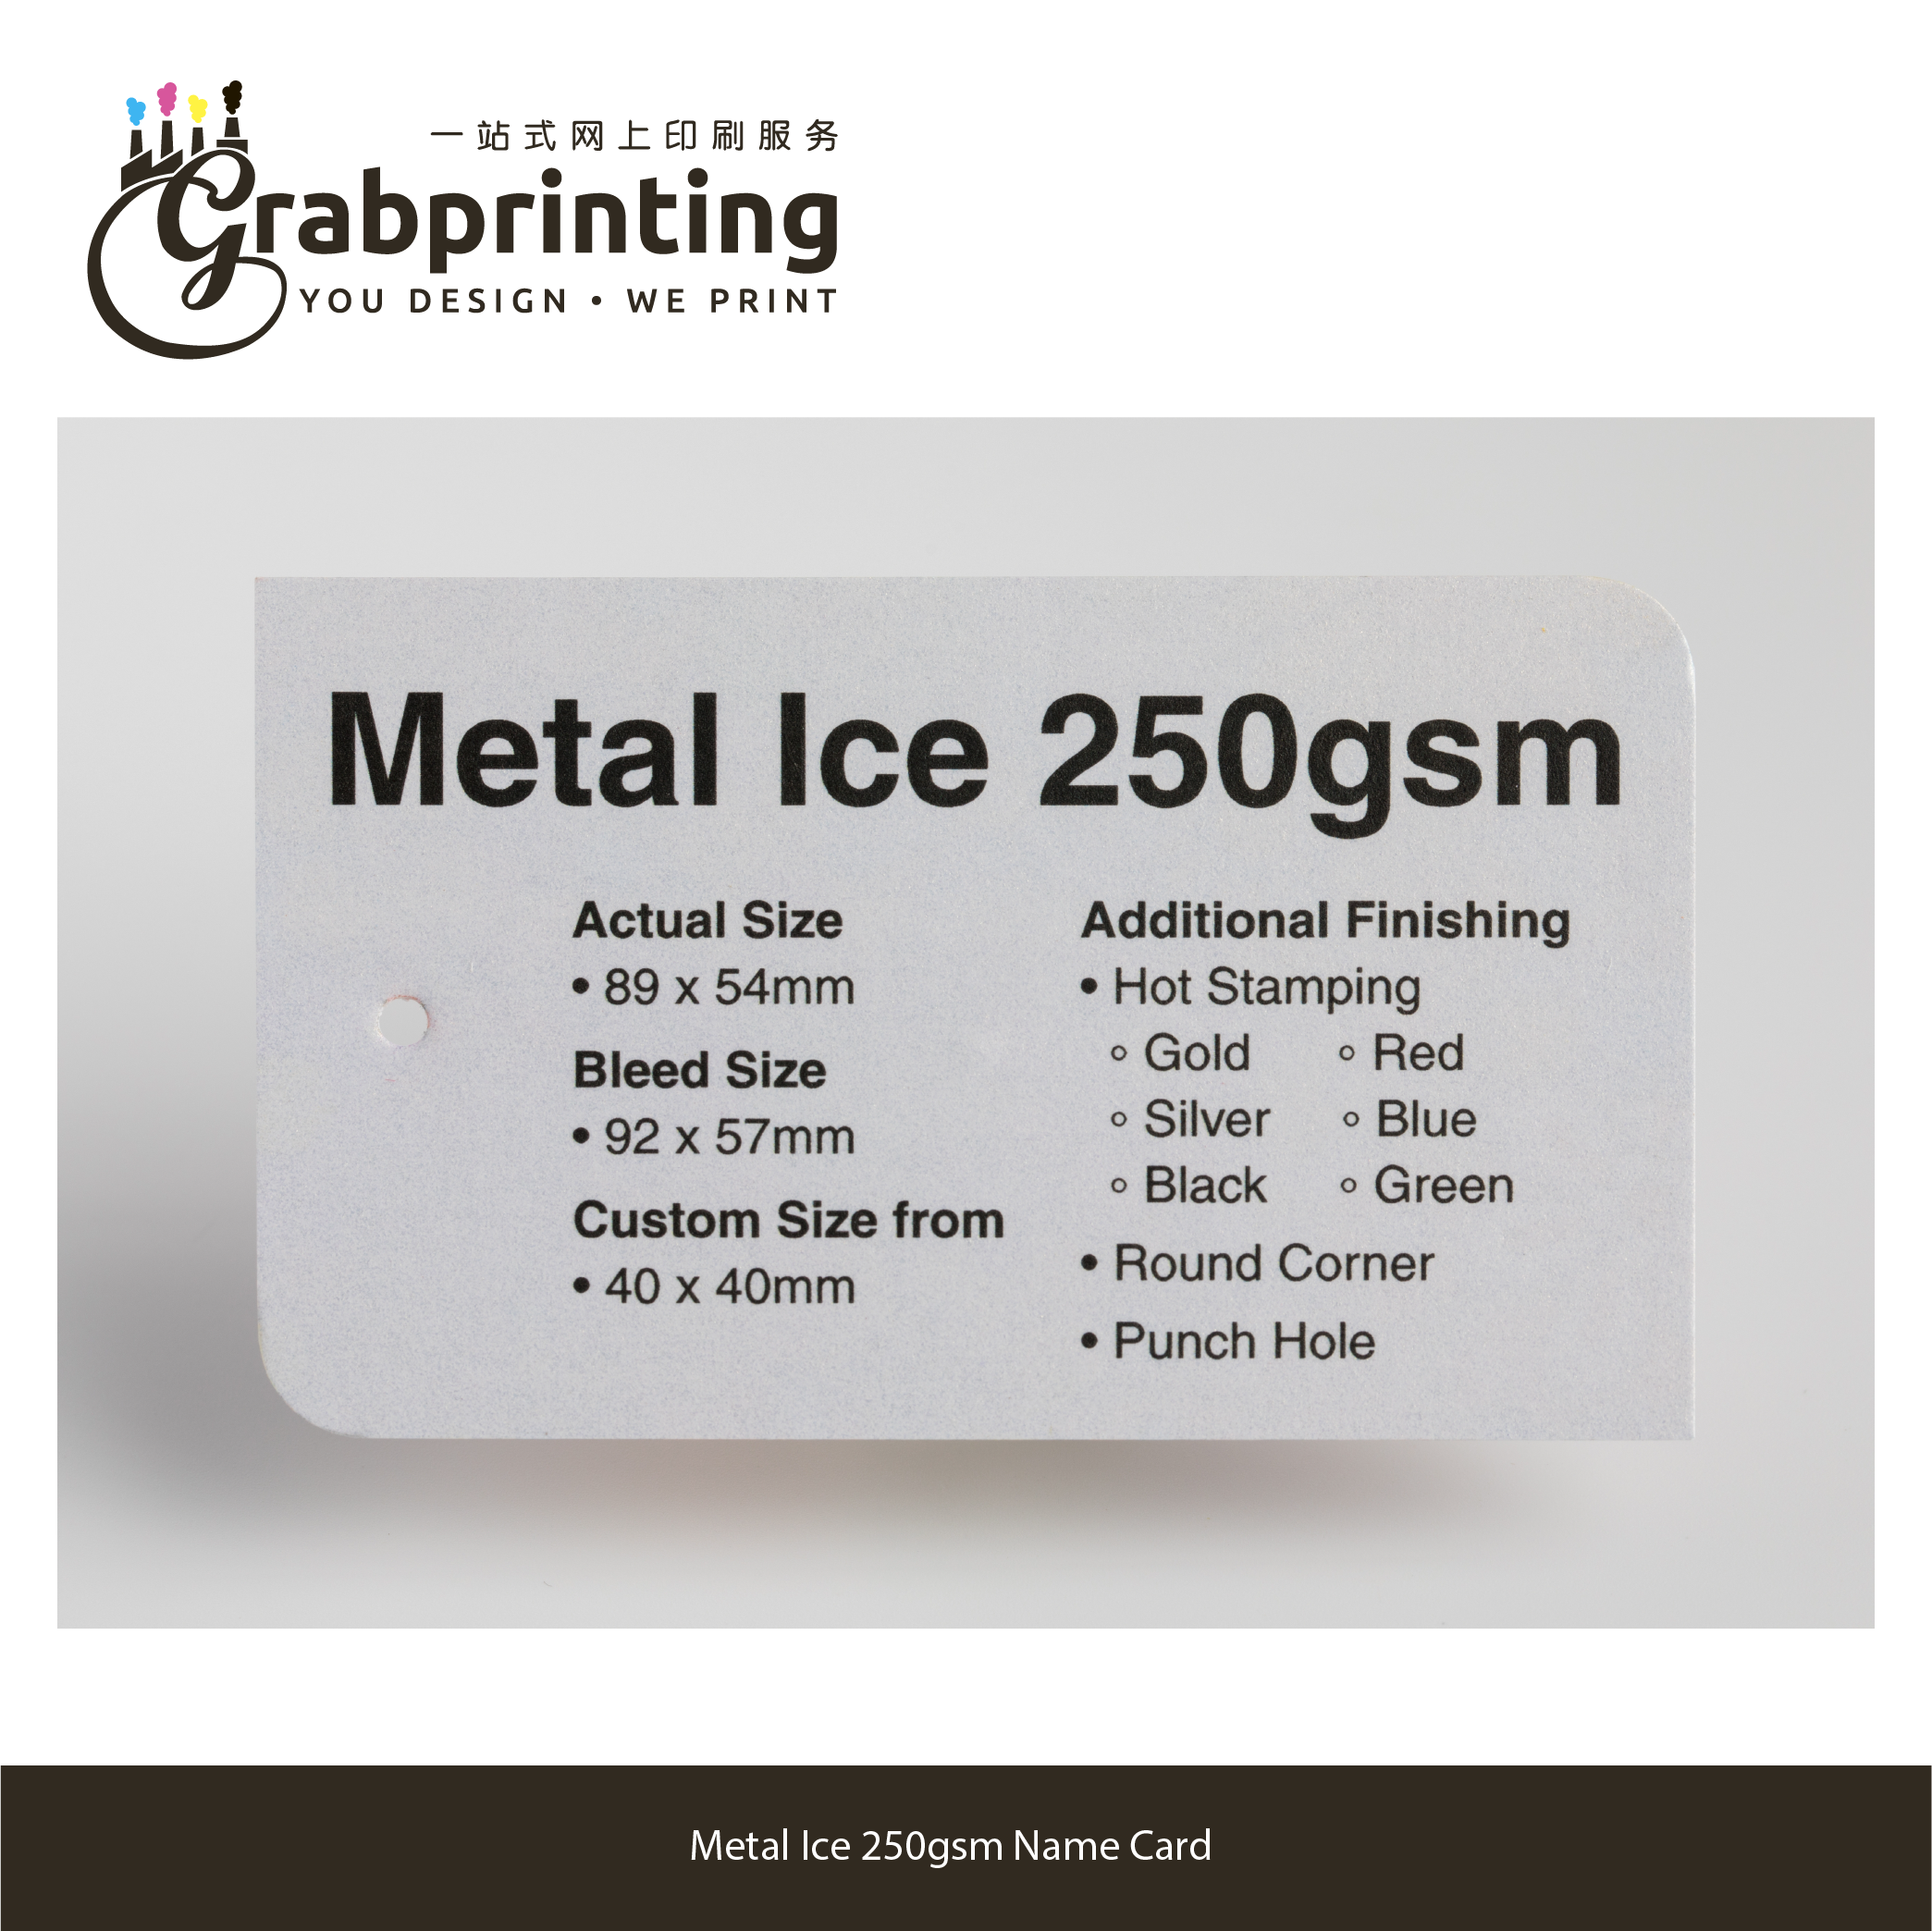 name cards Name Card (23 materials to choose from) grabprinting 46 Metal Ice 250gsm Name Card 501px 501px